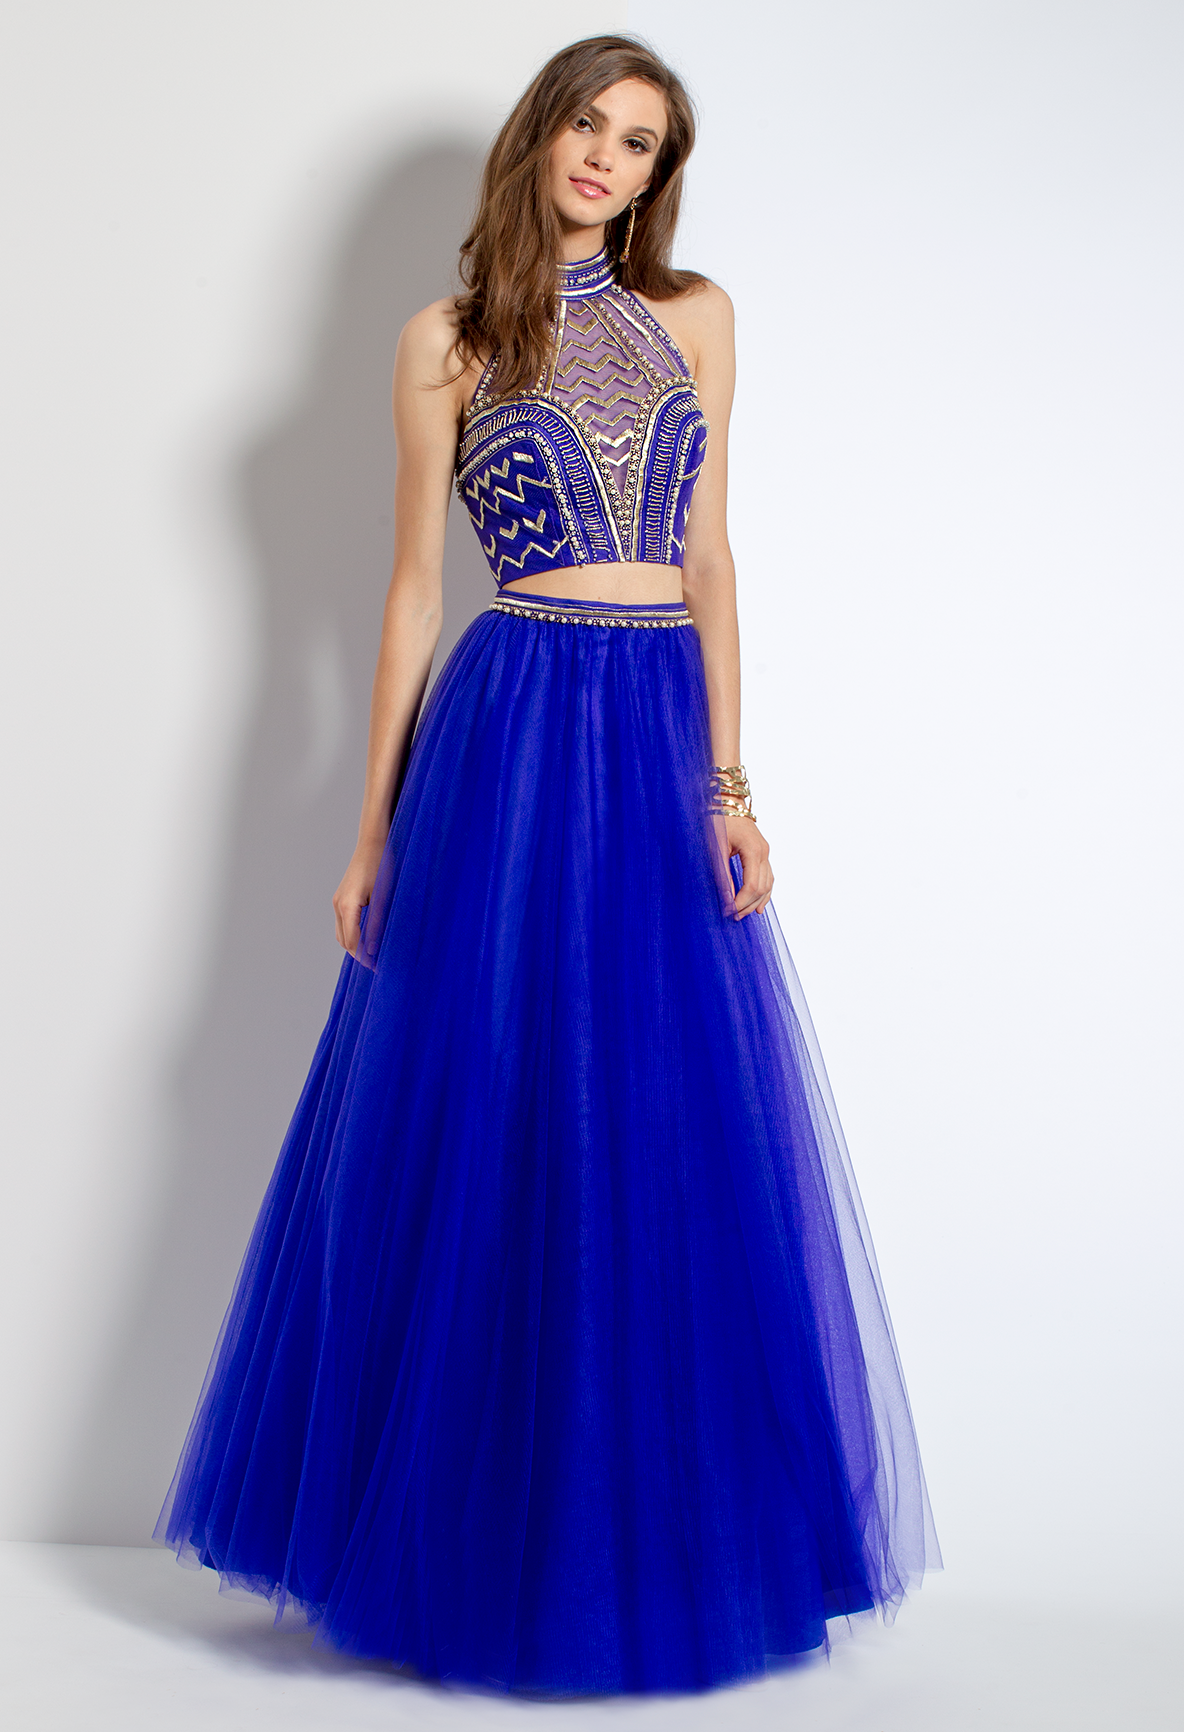 Look positively regal in this luxurious evening dress with its